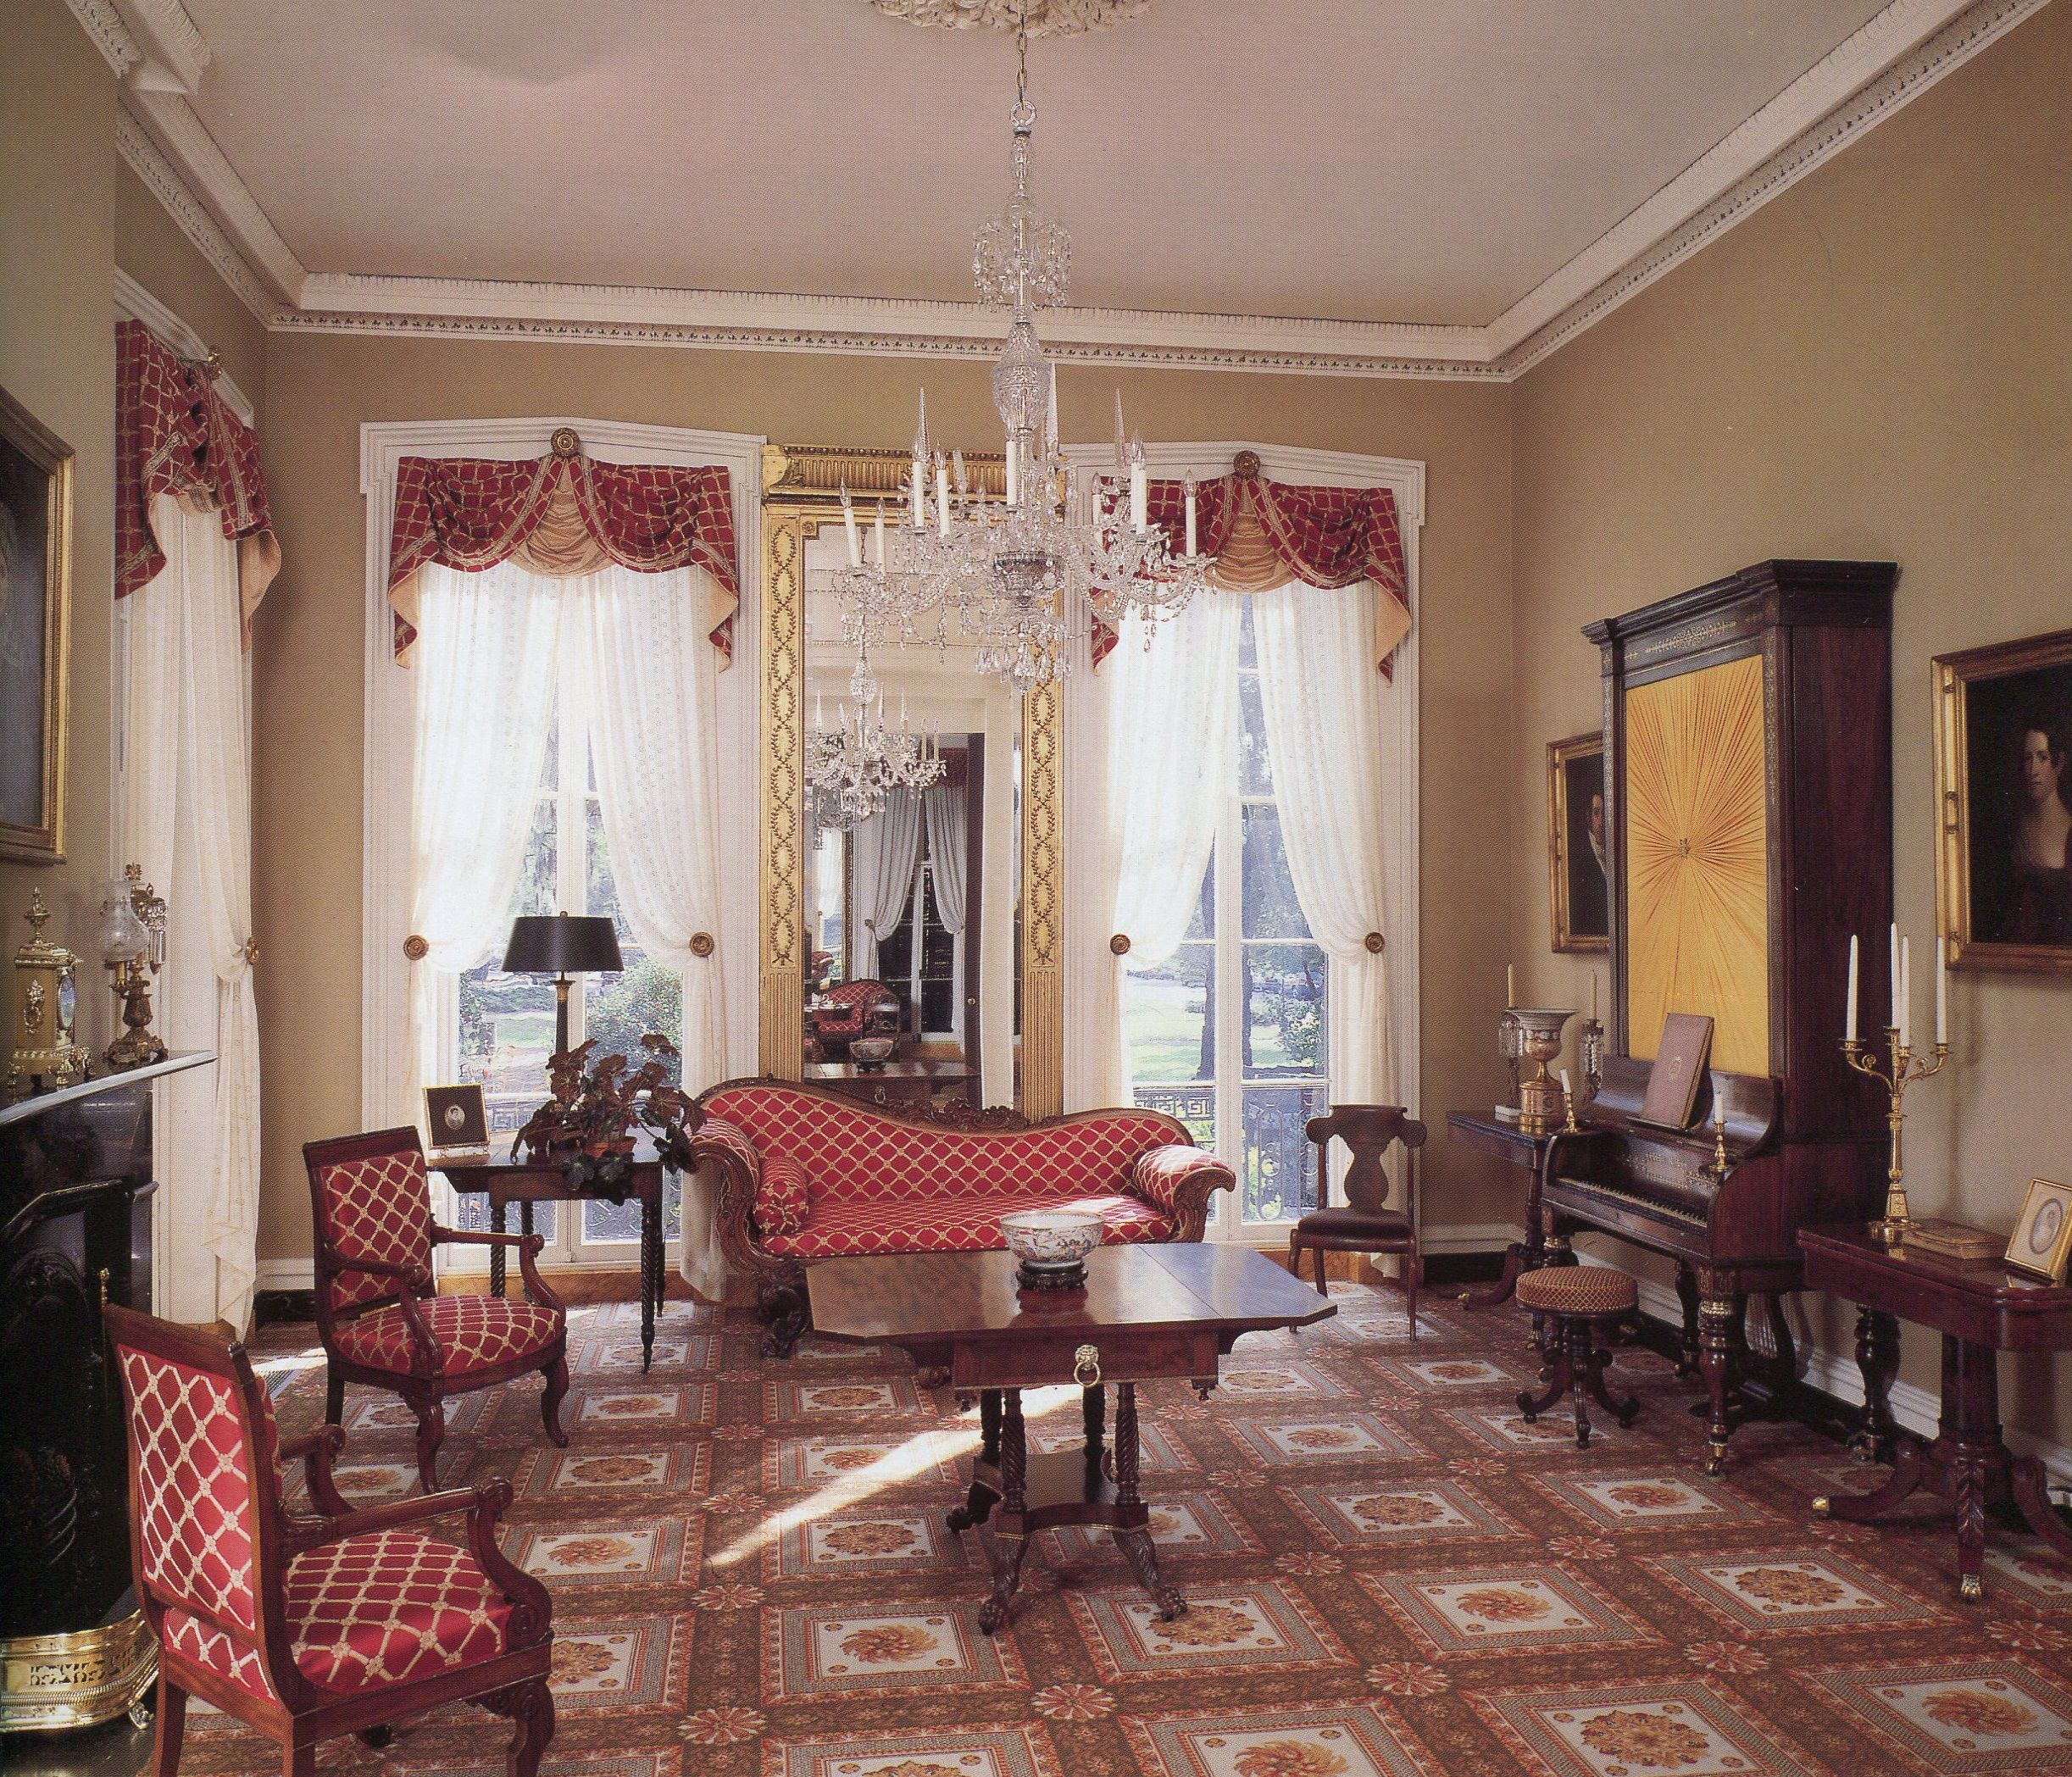 Andrew low house 329 lafayette square savannah ga - Georgia furniture interiors savannah ga ...